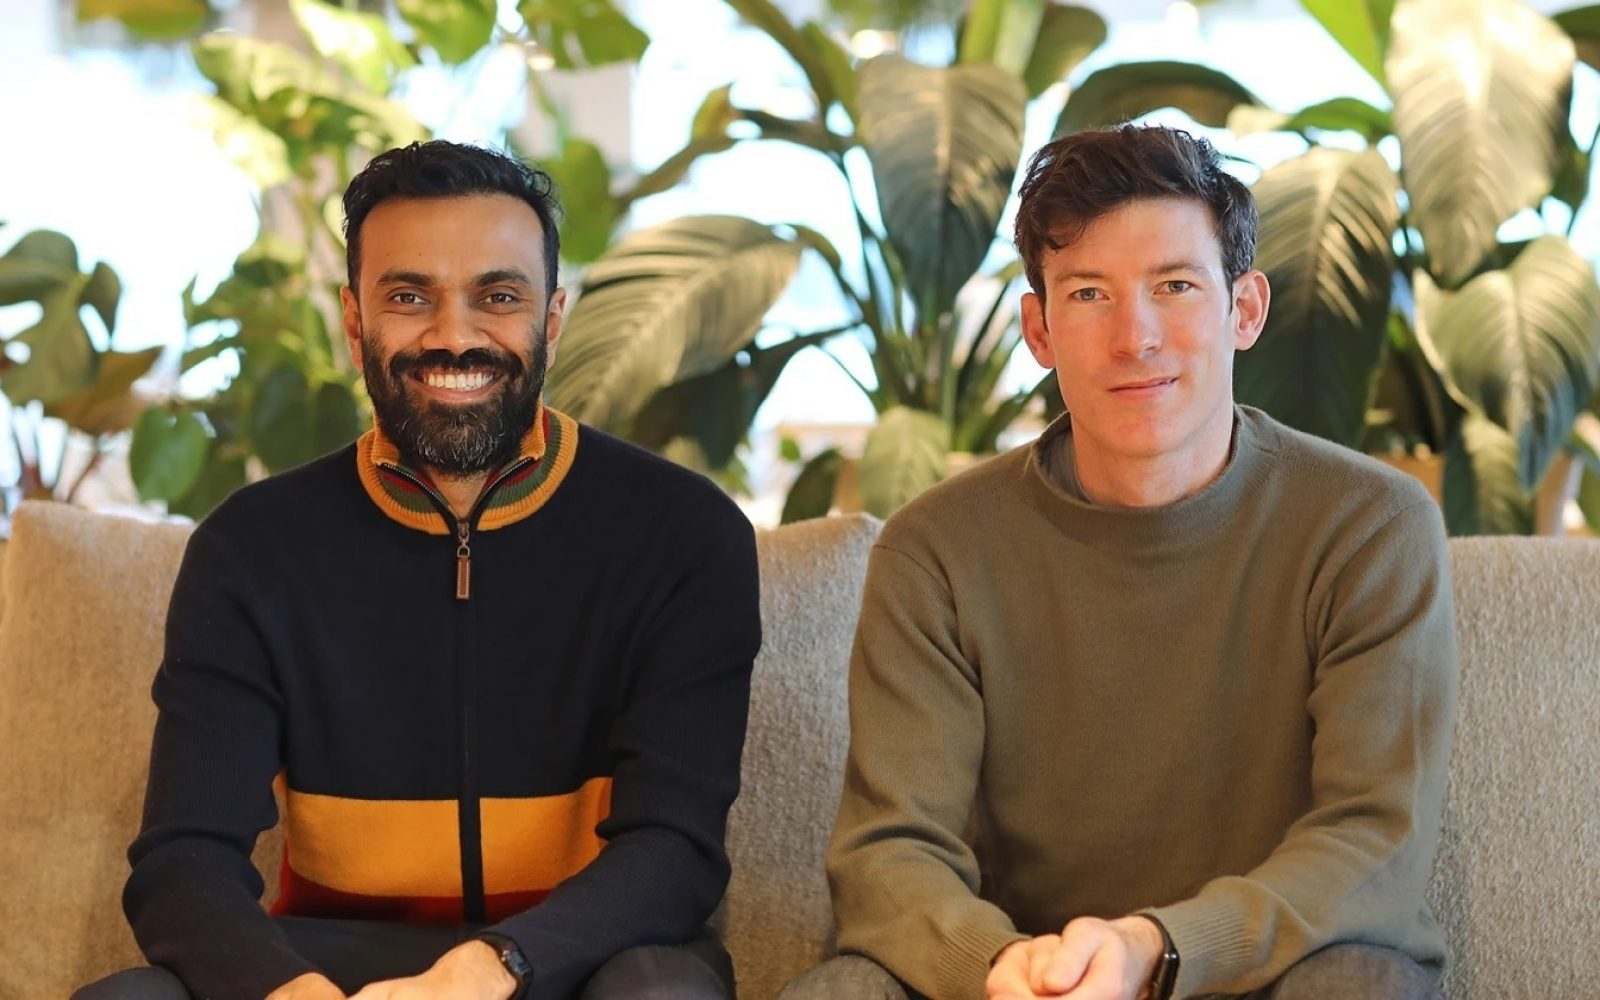 Amit Gudka with fellow Bulb co-founder Hayden Wood. Image: Bulb.